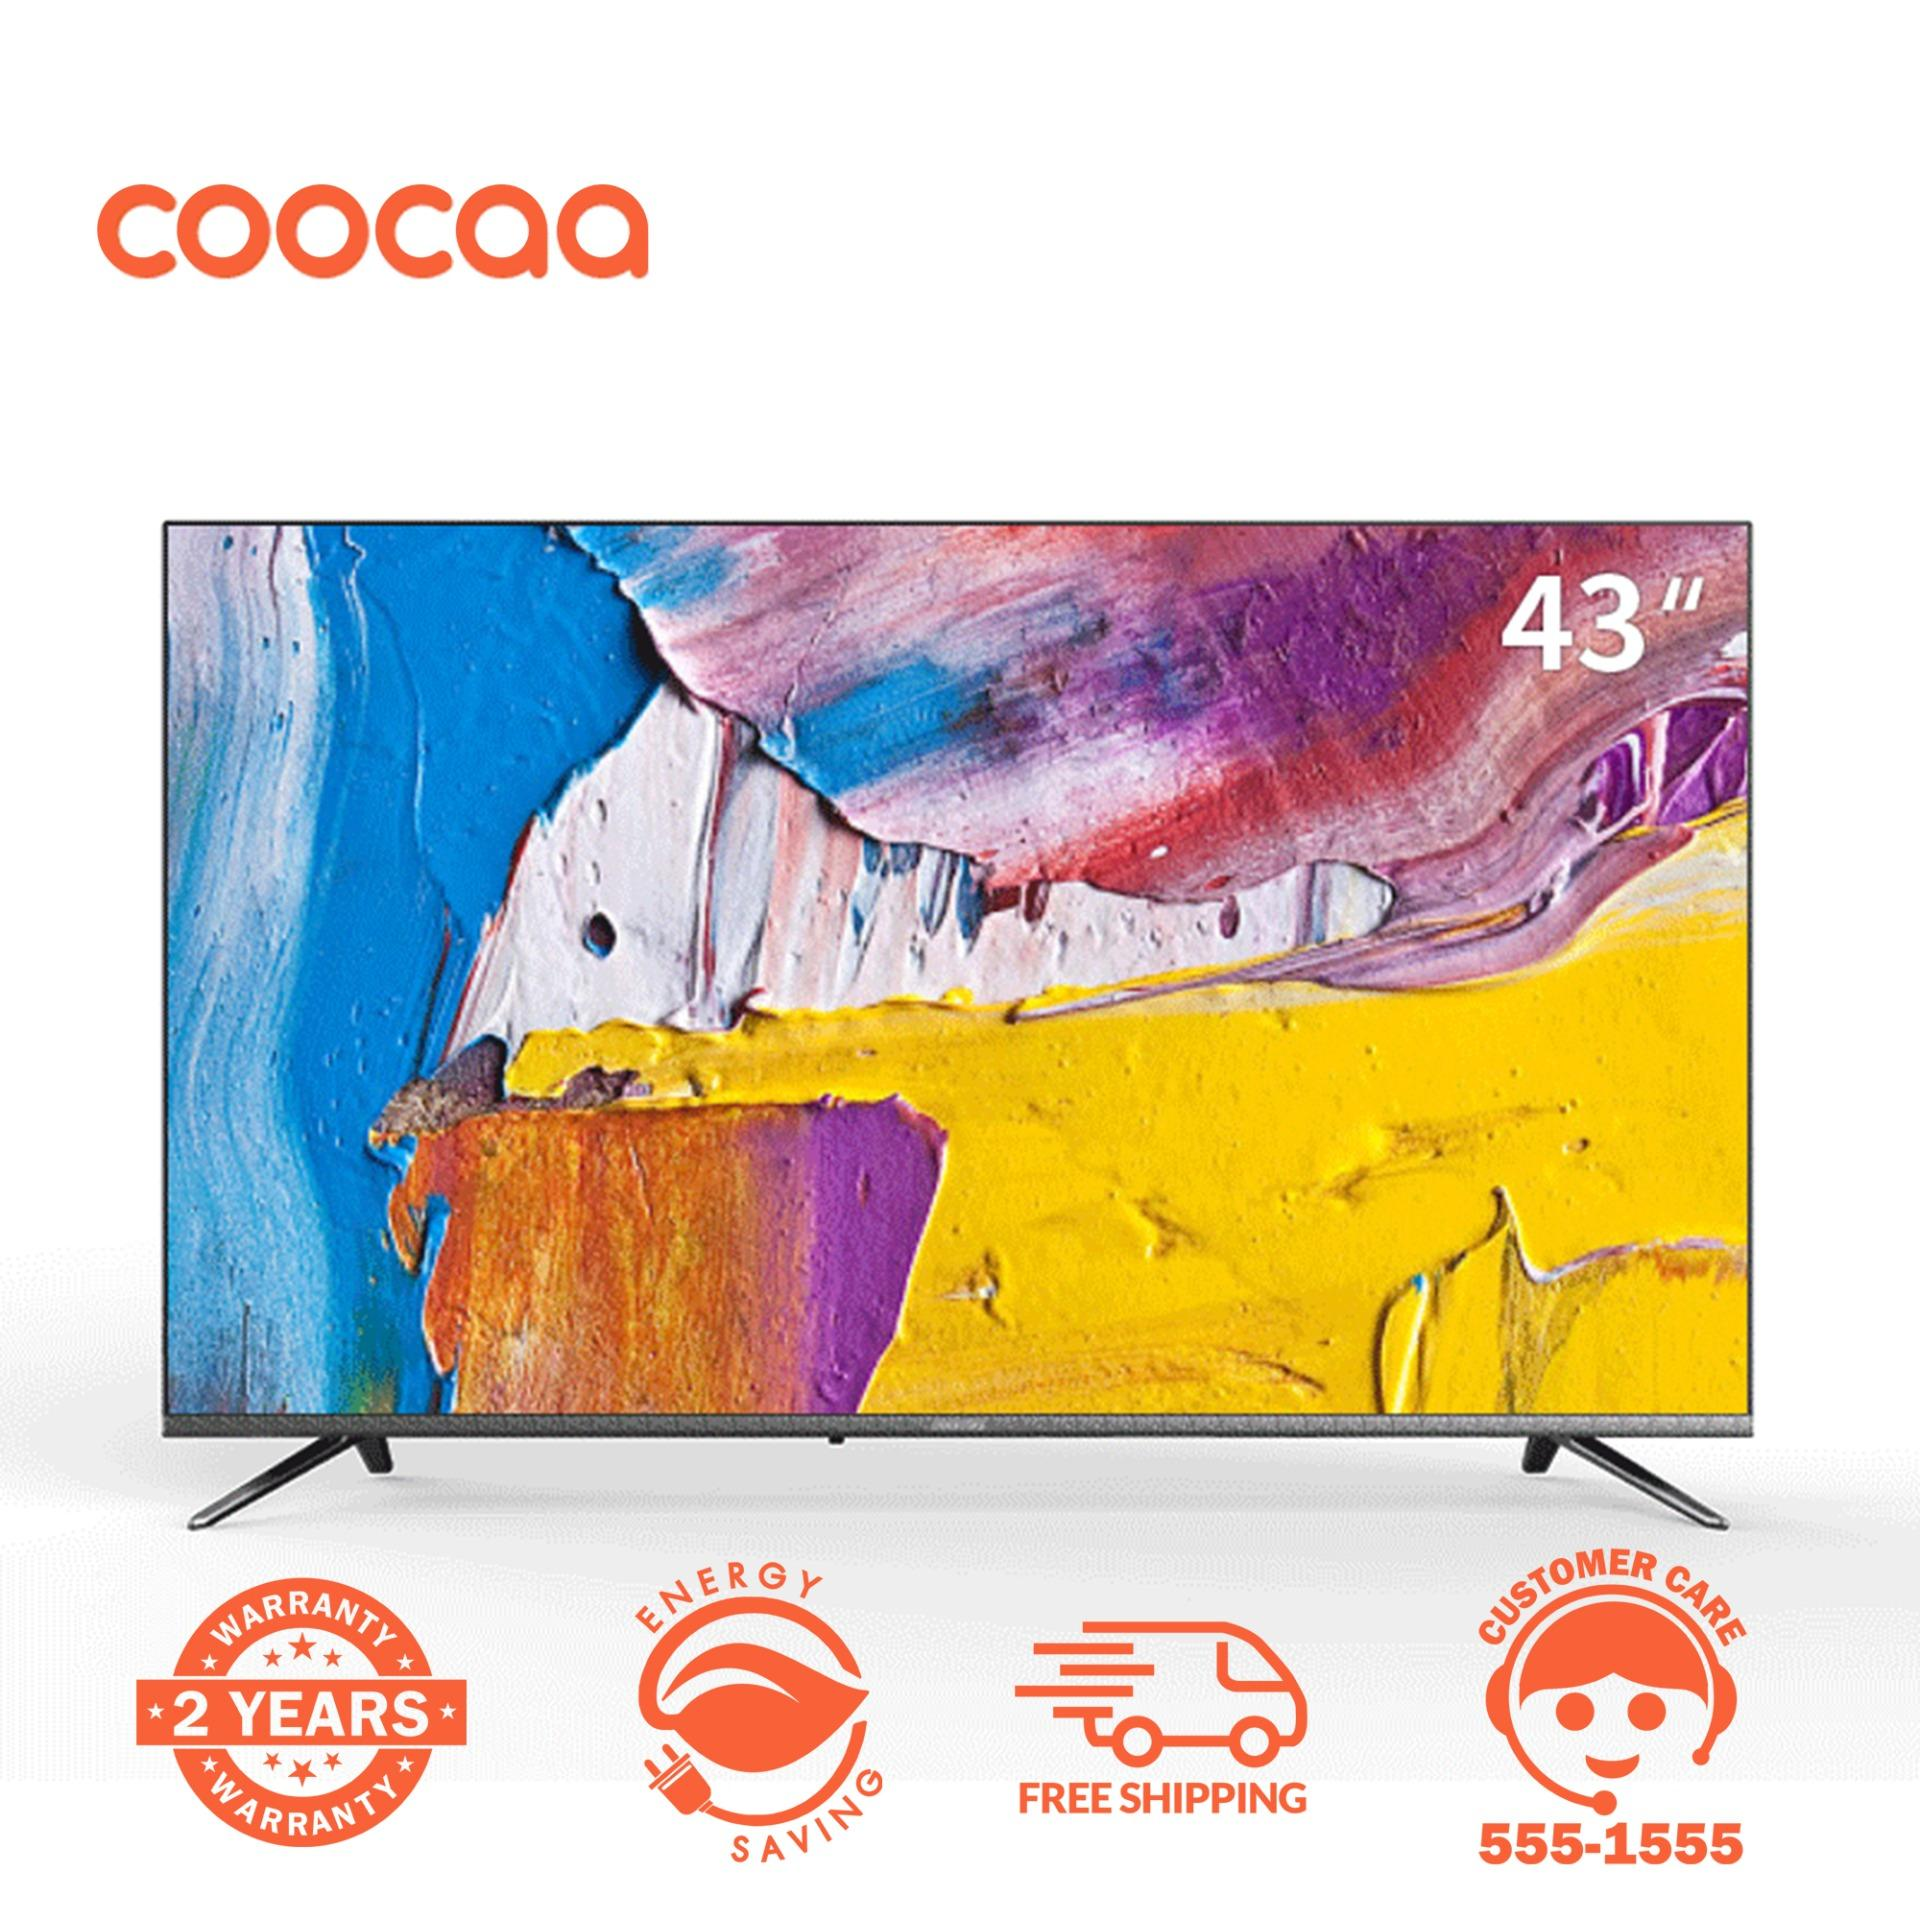 Coocaa Philippines - Coocaa Smart Televisions for sale - prices